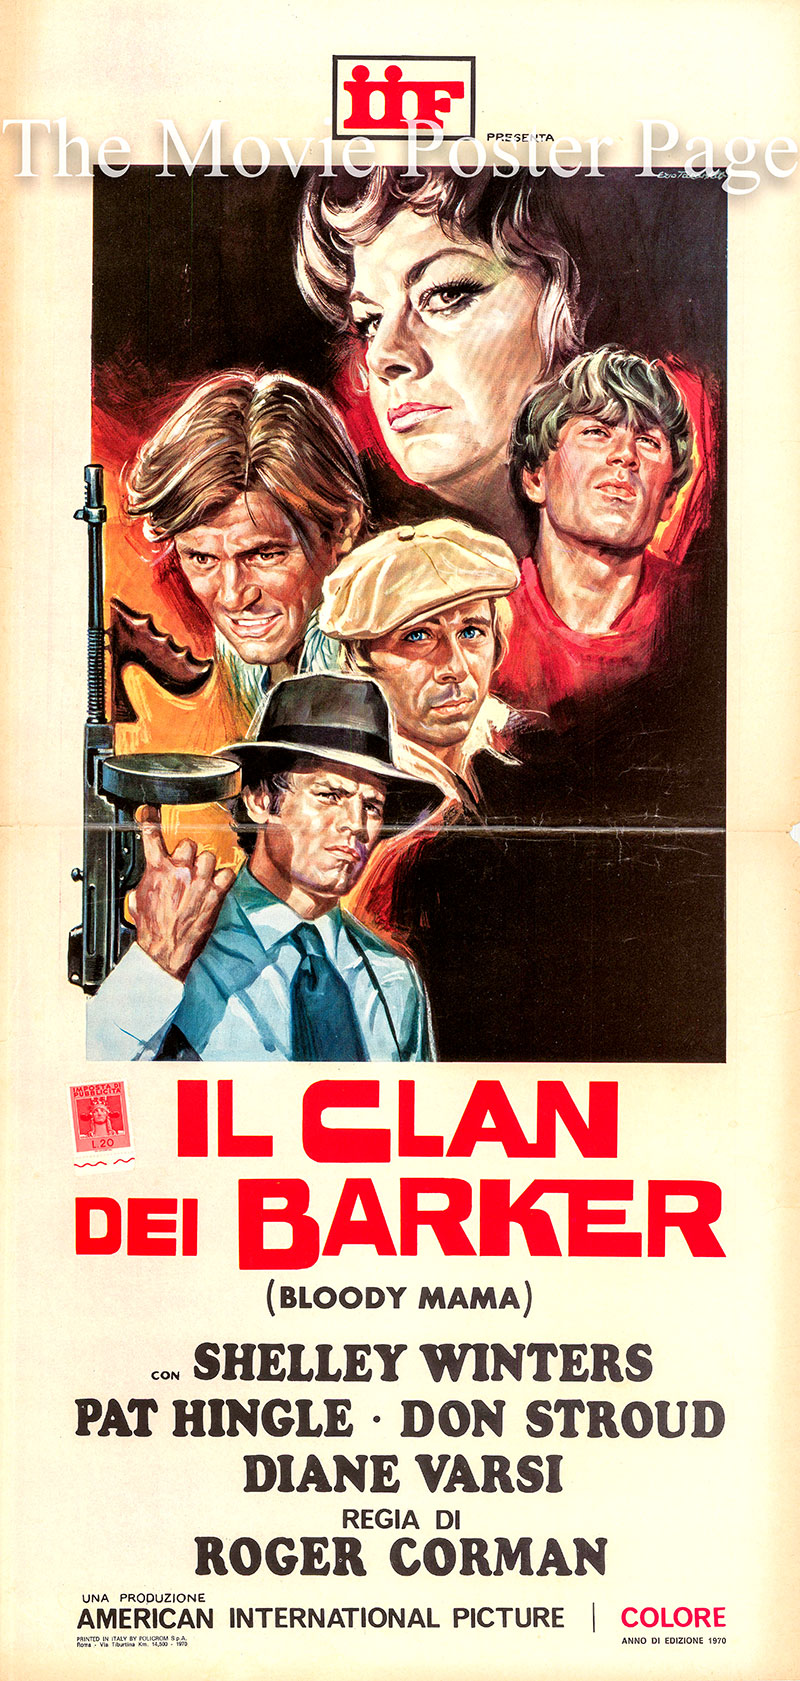 Pictured is an Italian locandina promotional poster for the 1970 Roger Corman film <i>Bloody Mama</i> starring Shelley Winters as Kate Barker.